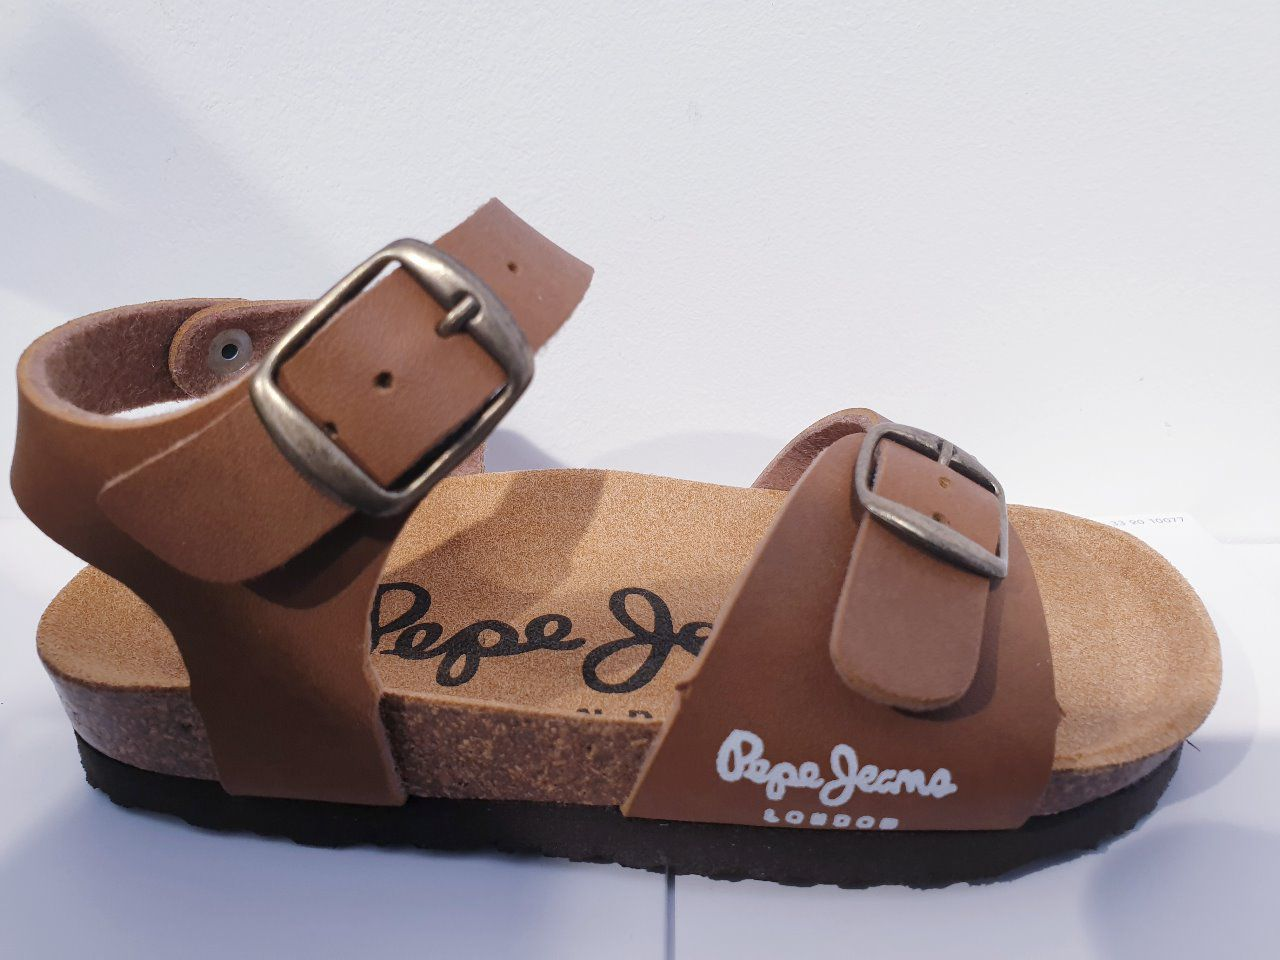 PEPE JEANS bio sandal two buckles tobacco